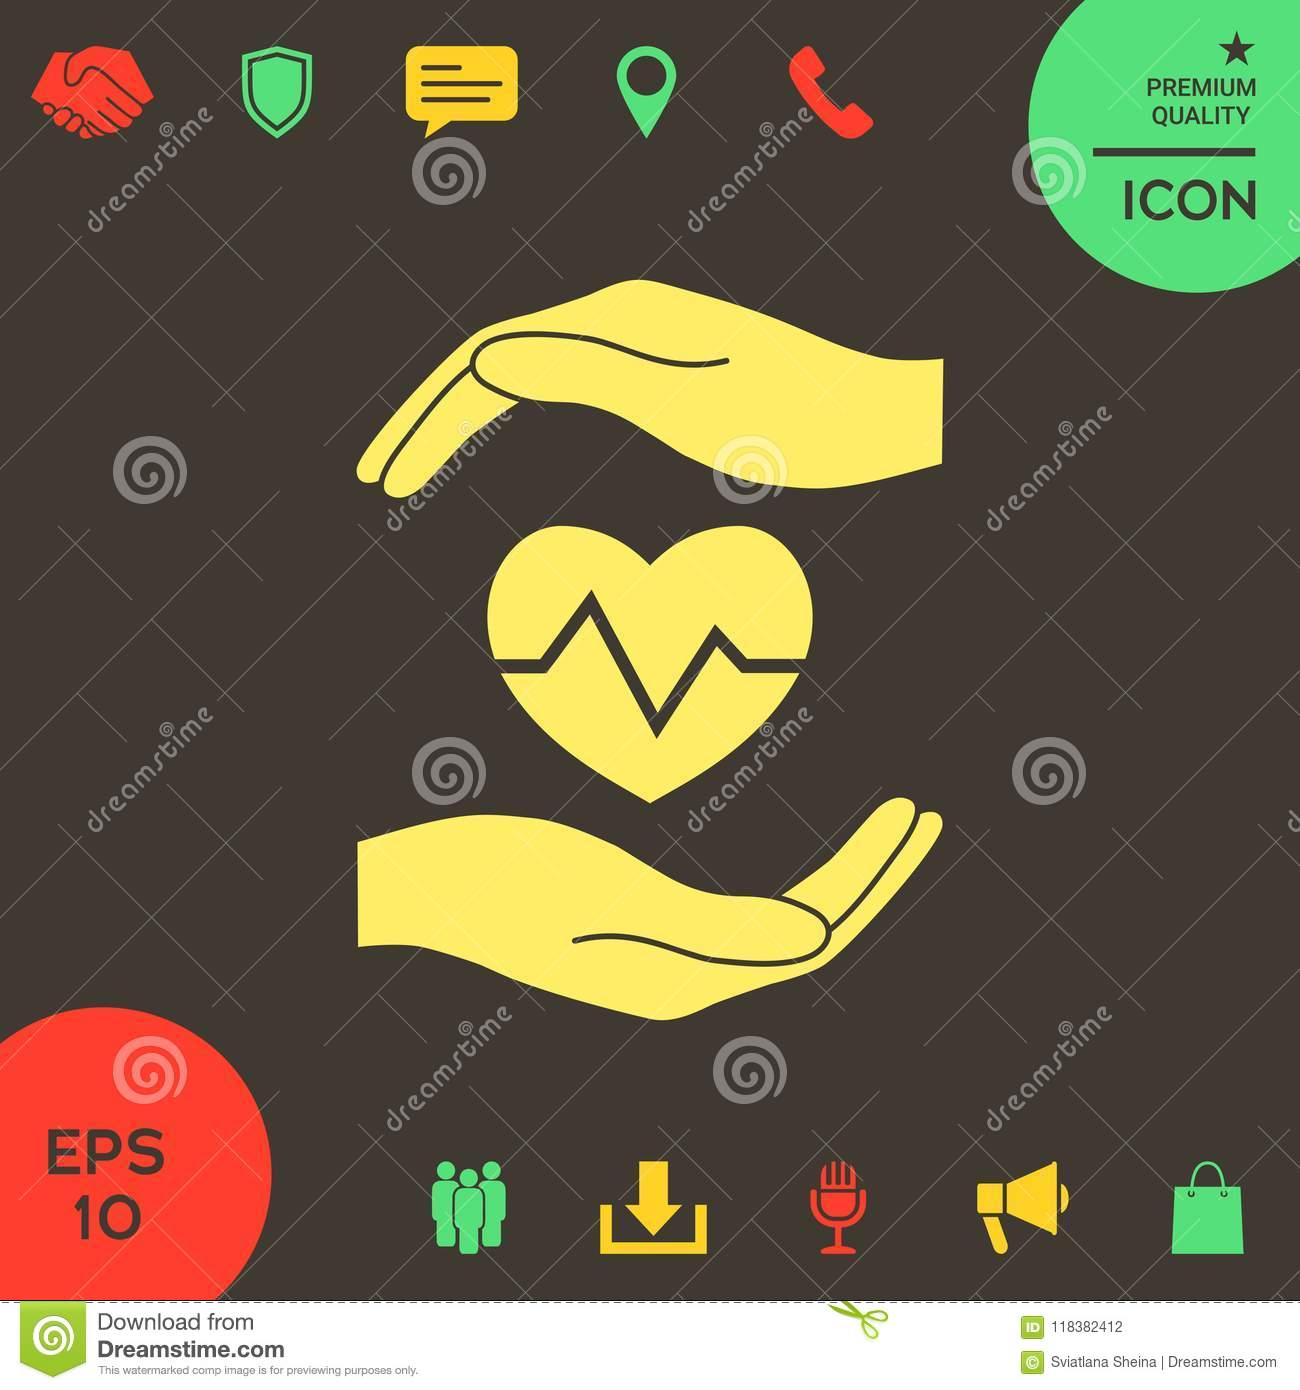 Hands Holding Heart  Medical Icon Stock Vector - Illustration of